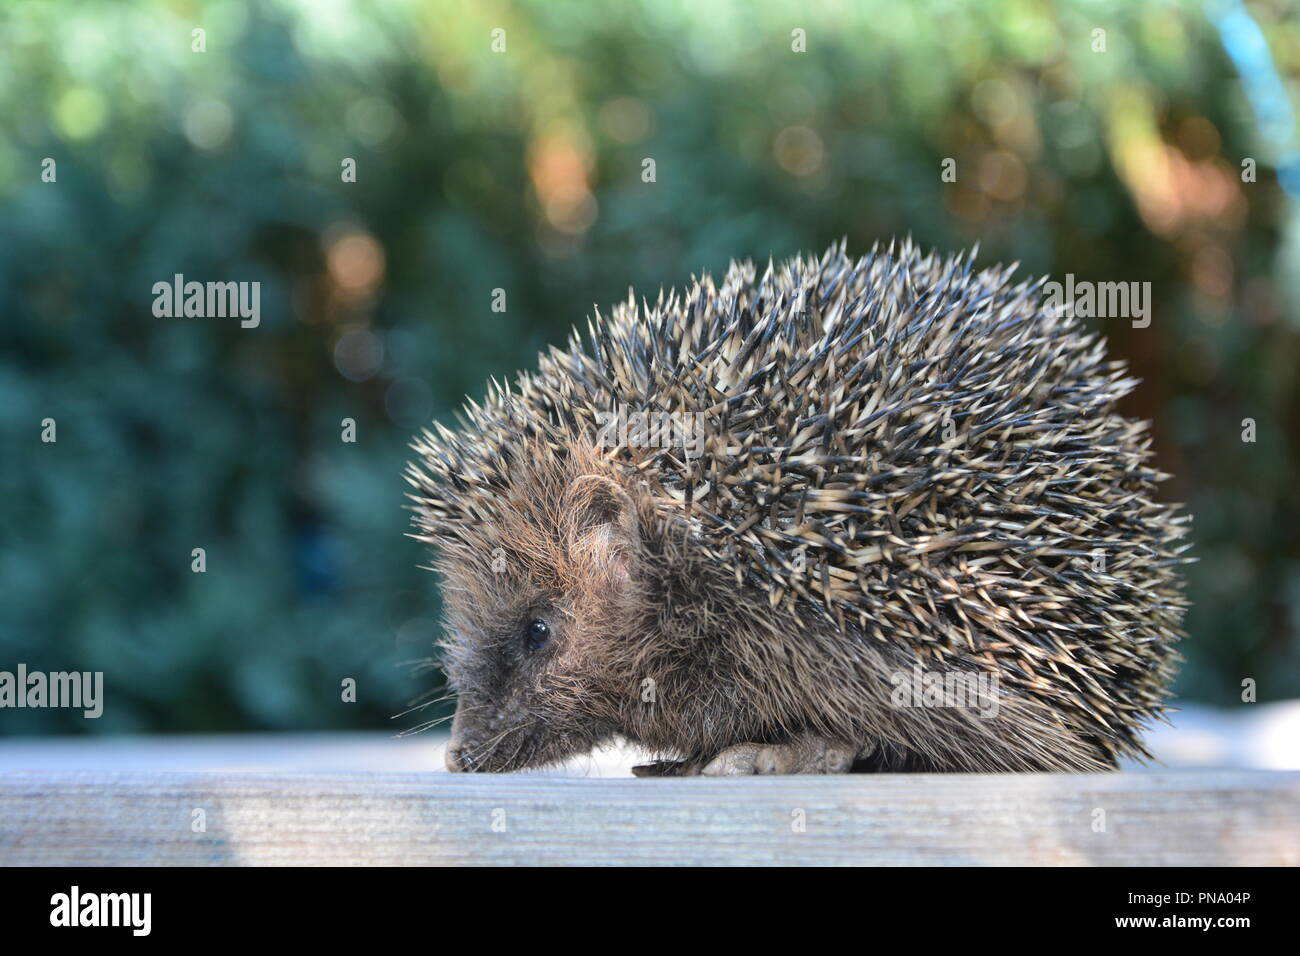 Hedgehog from the side on wood in front of green nature - Stock Image